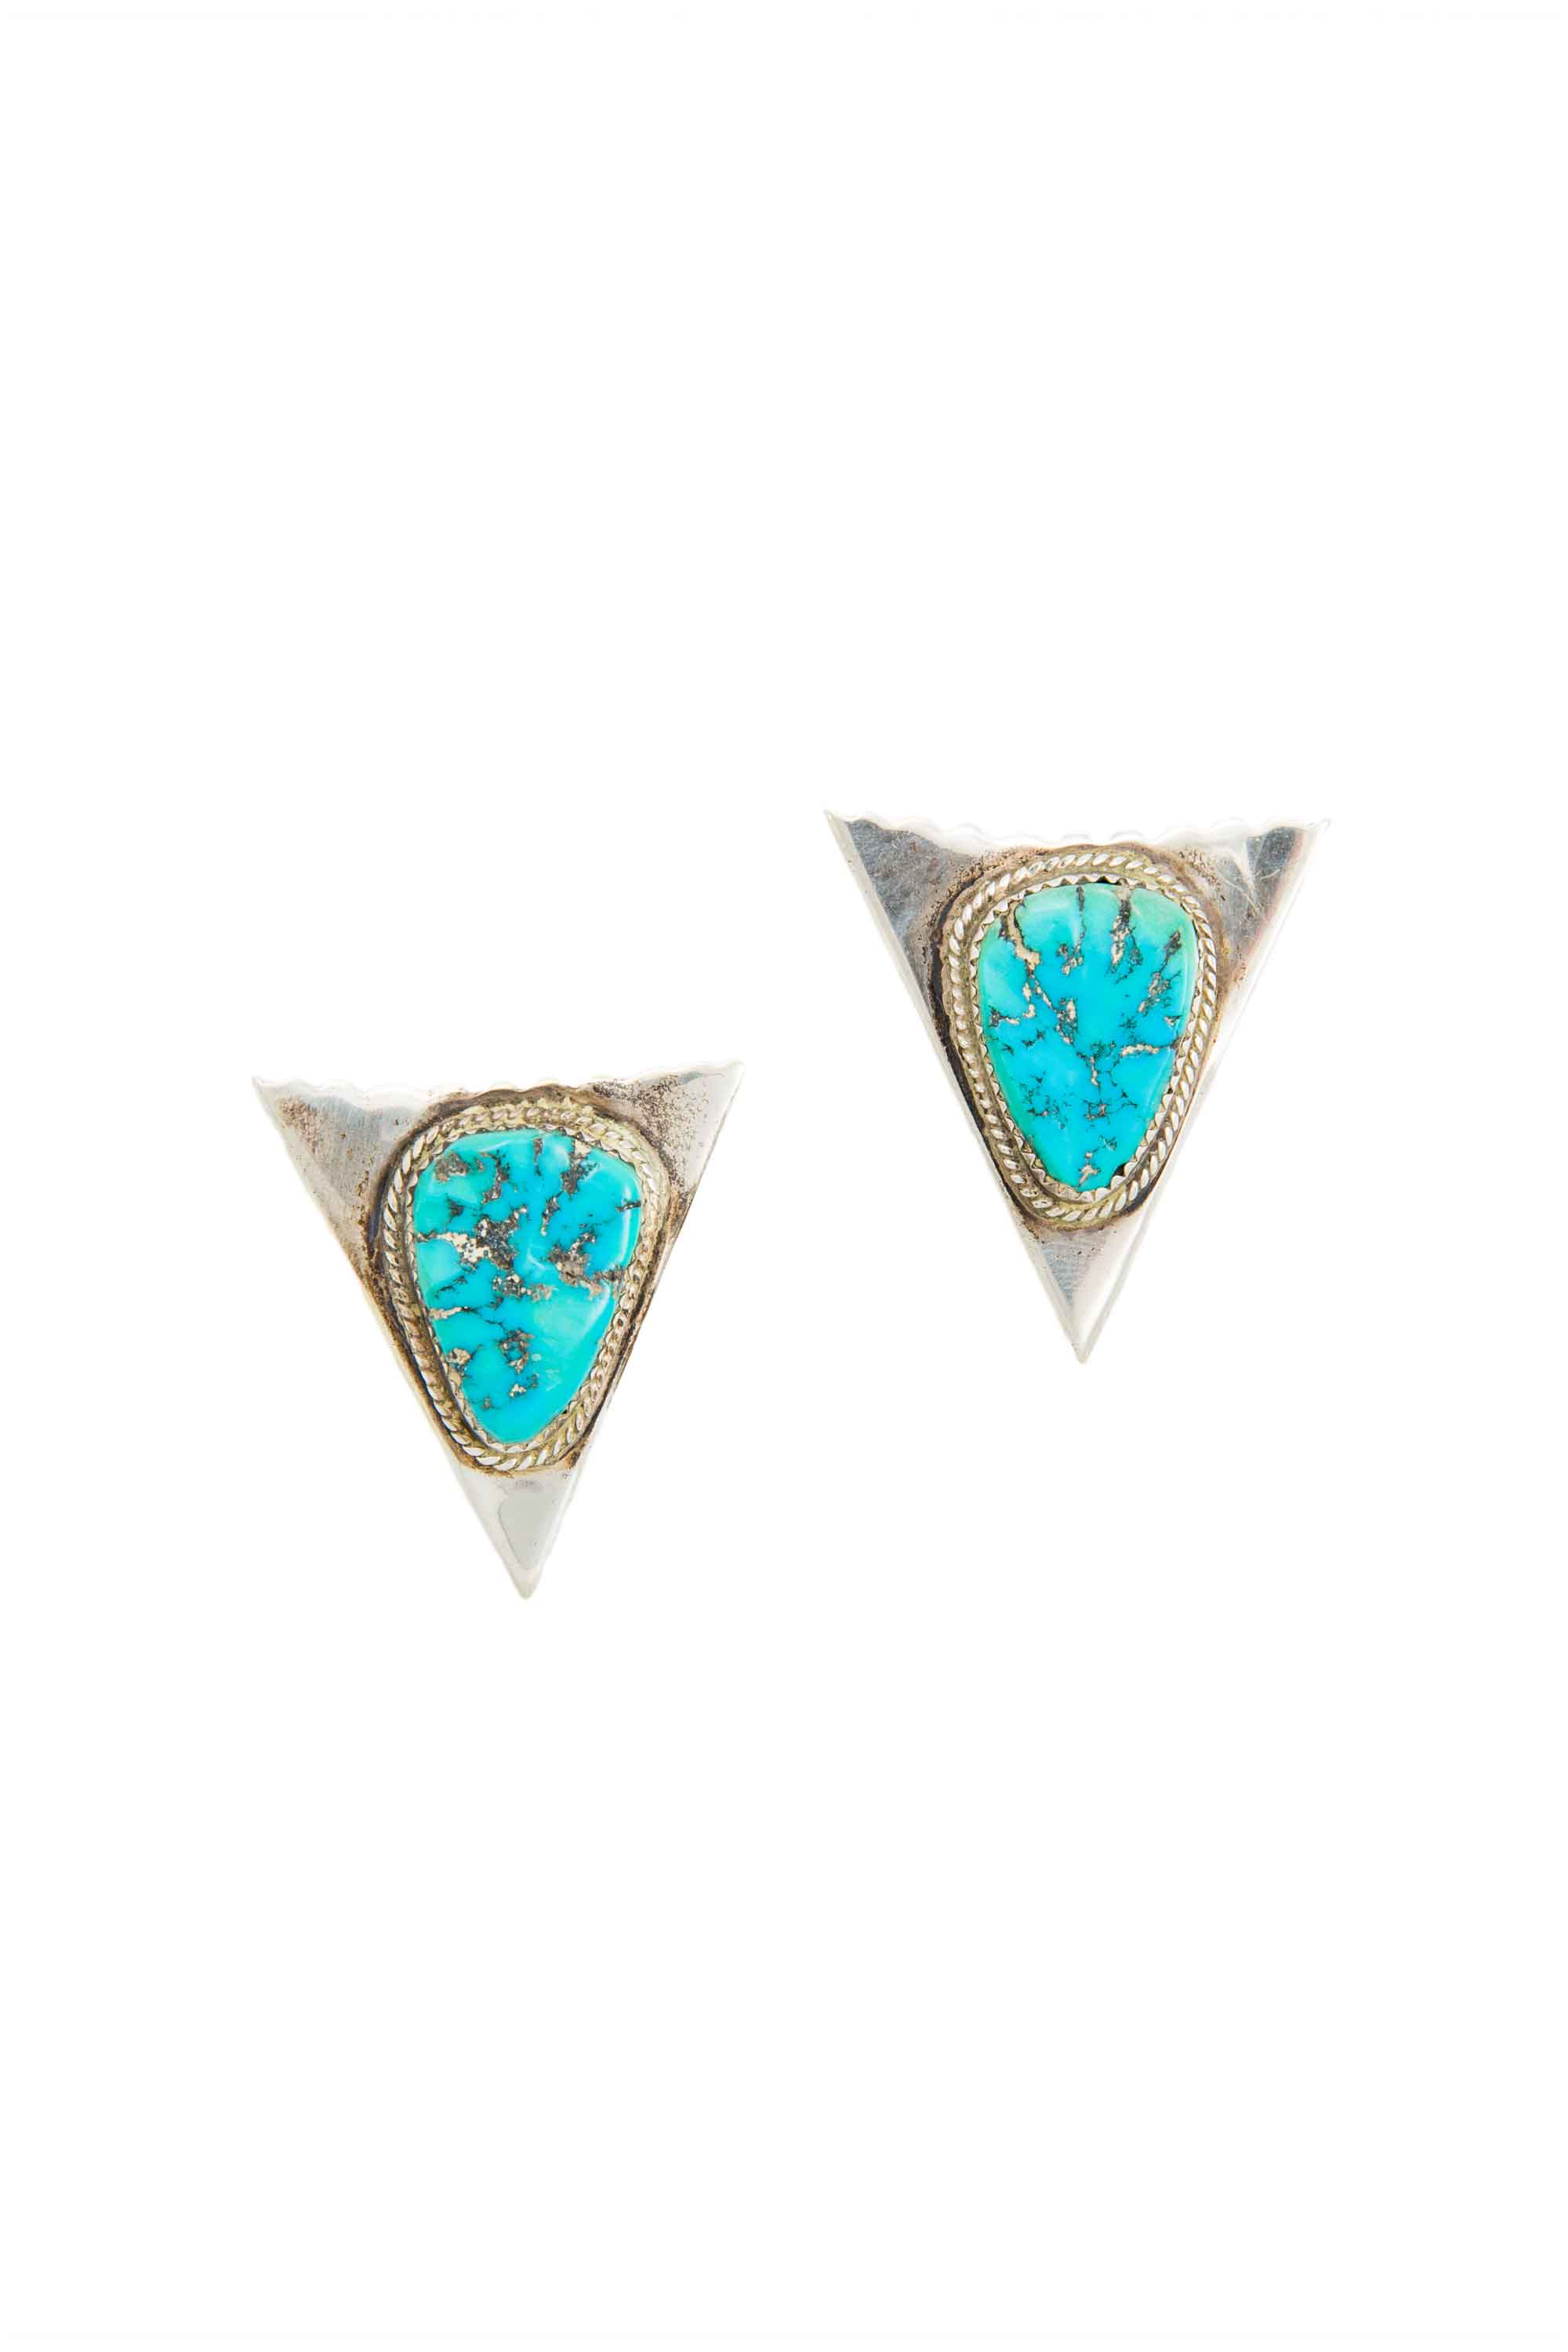 Collar Tips, Sterling Silver & Turquoise, Hallmark, Vintage, 431